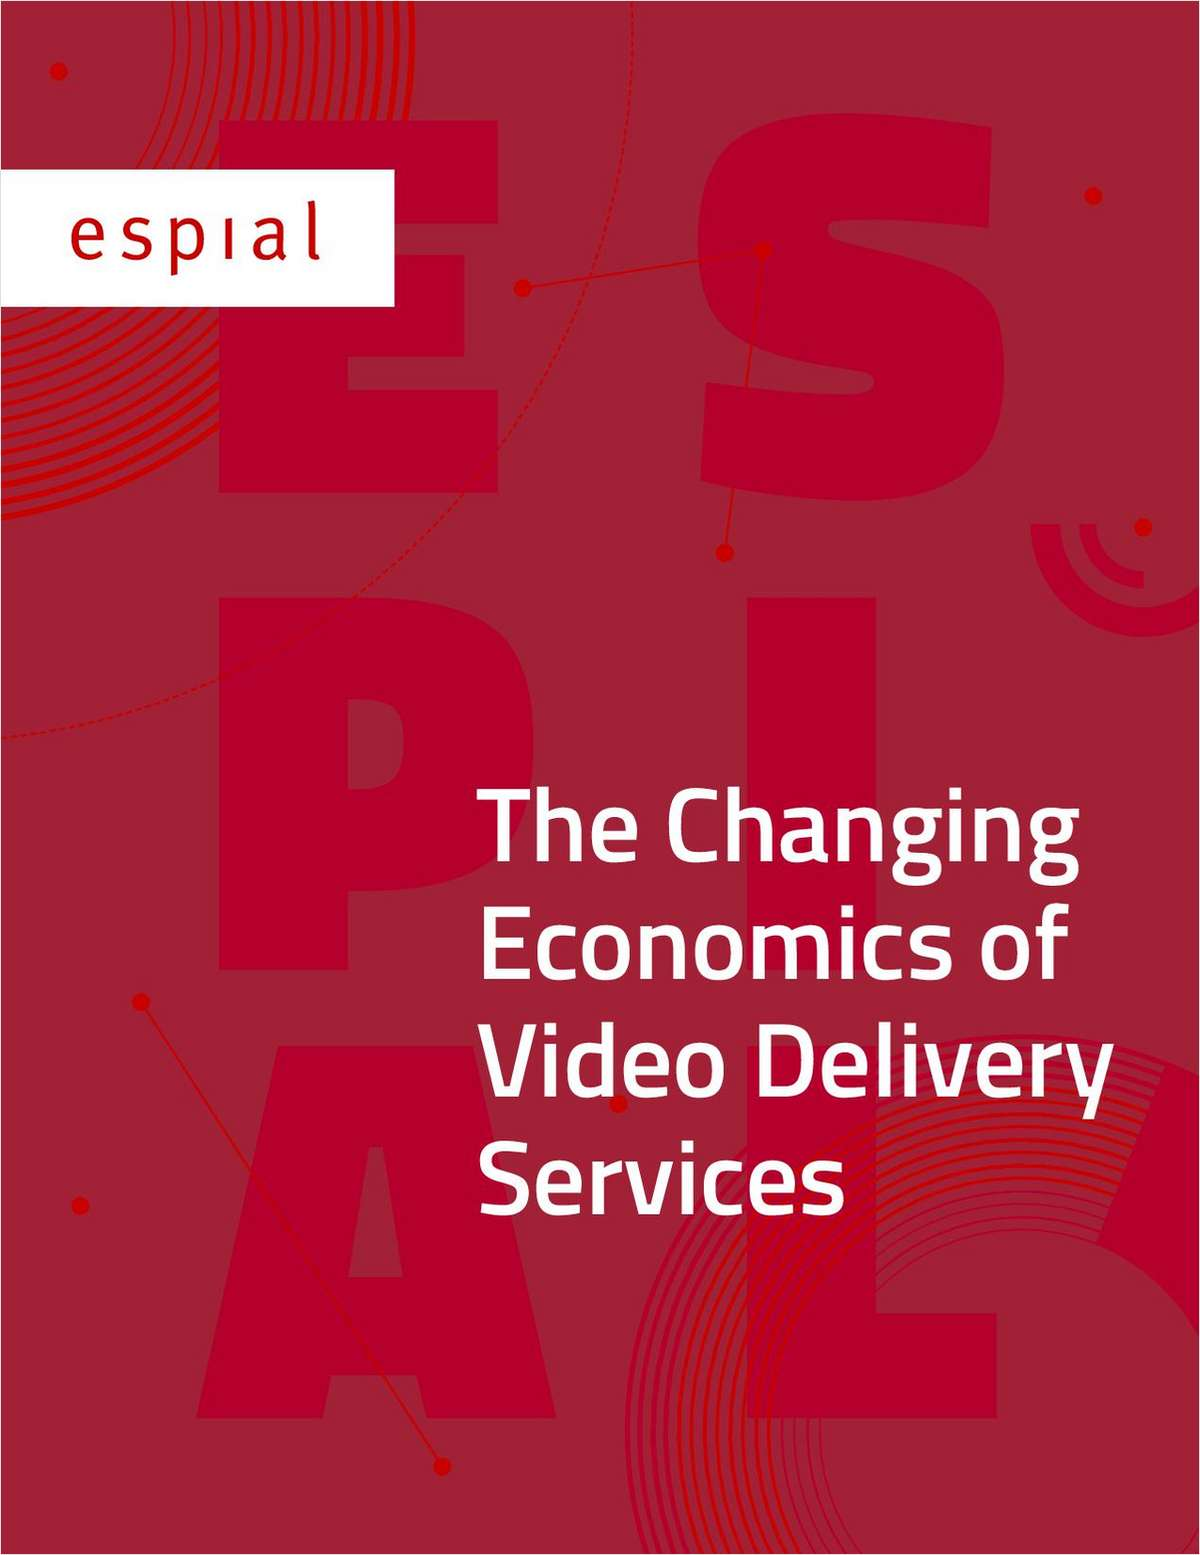 The Changing Economics of Video Delivery Services